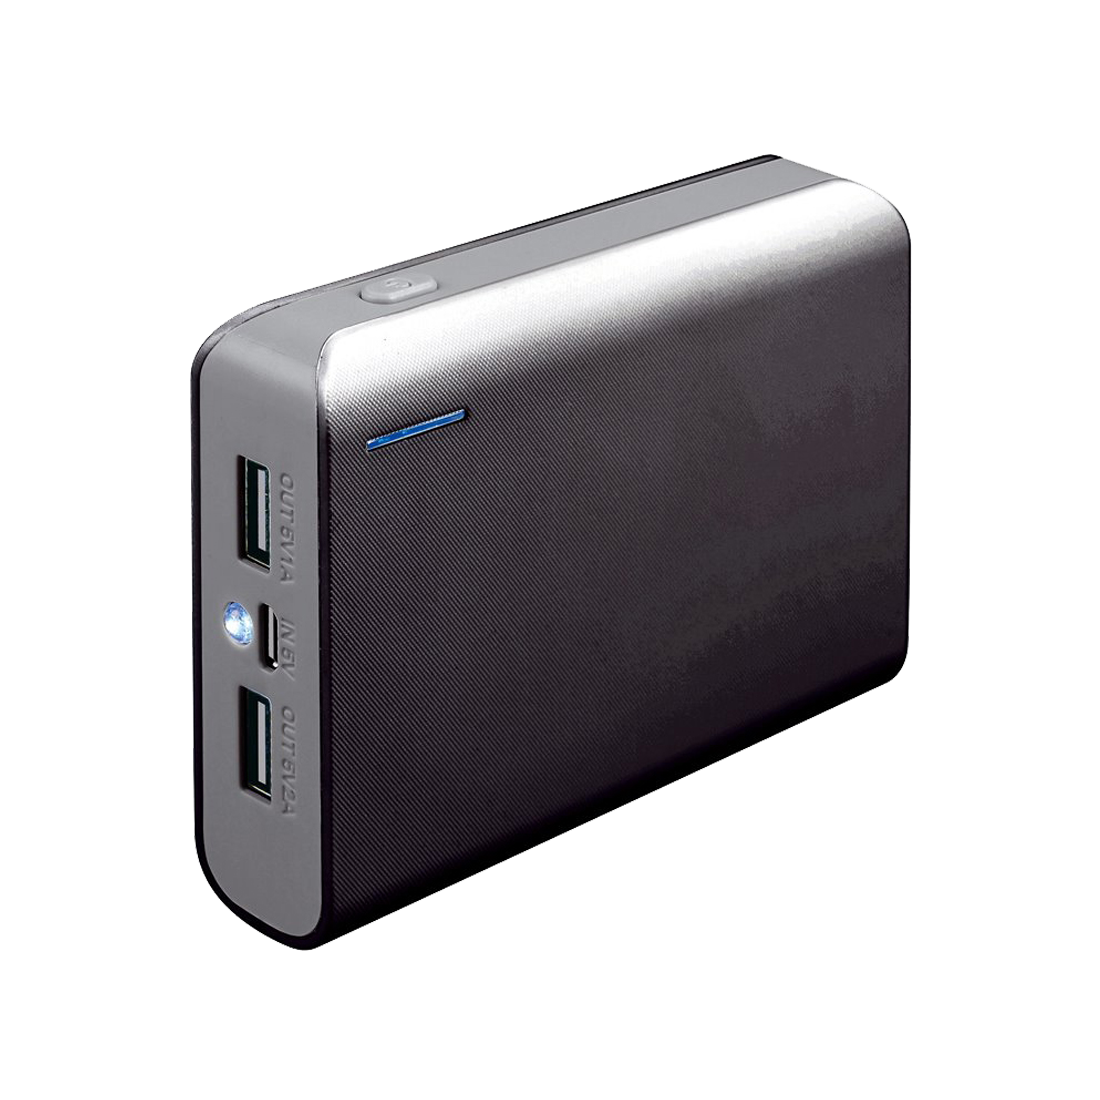 Powerbank Platinet 6000mAh